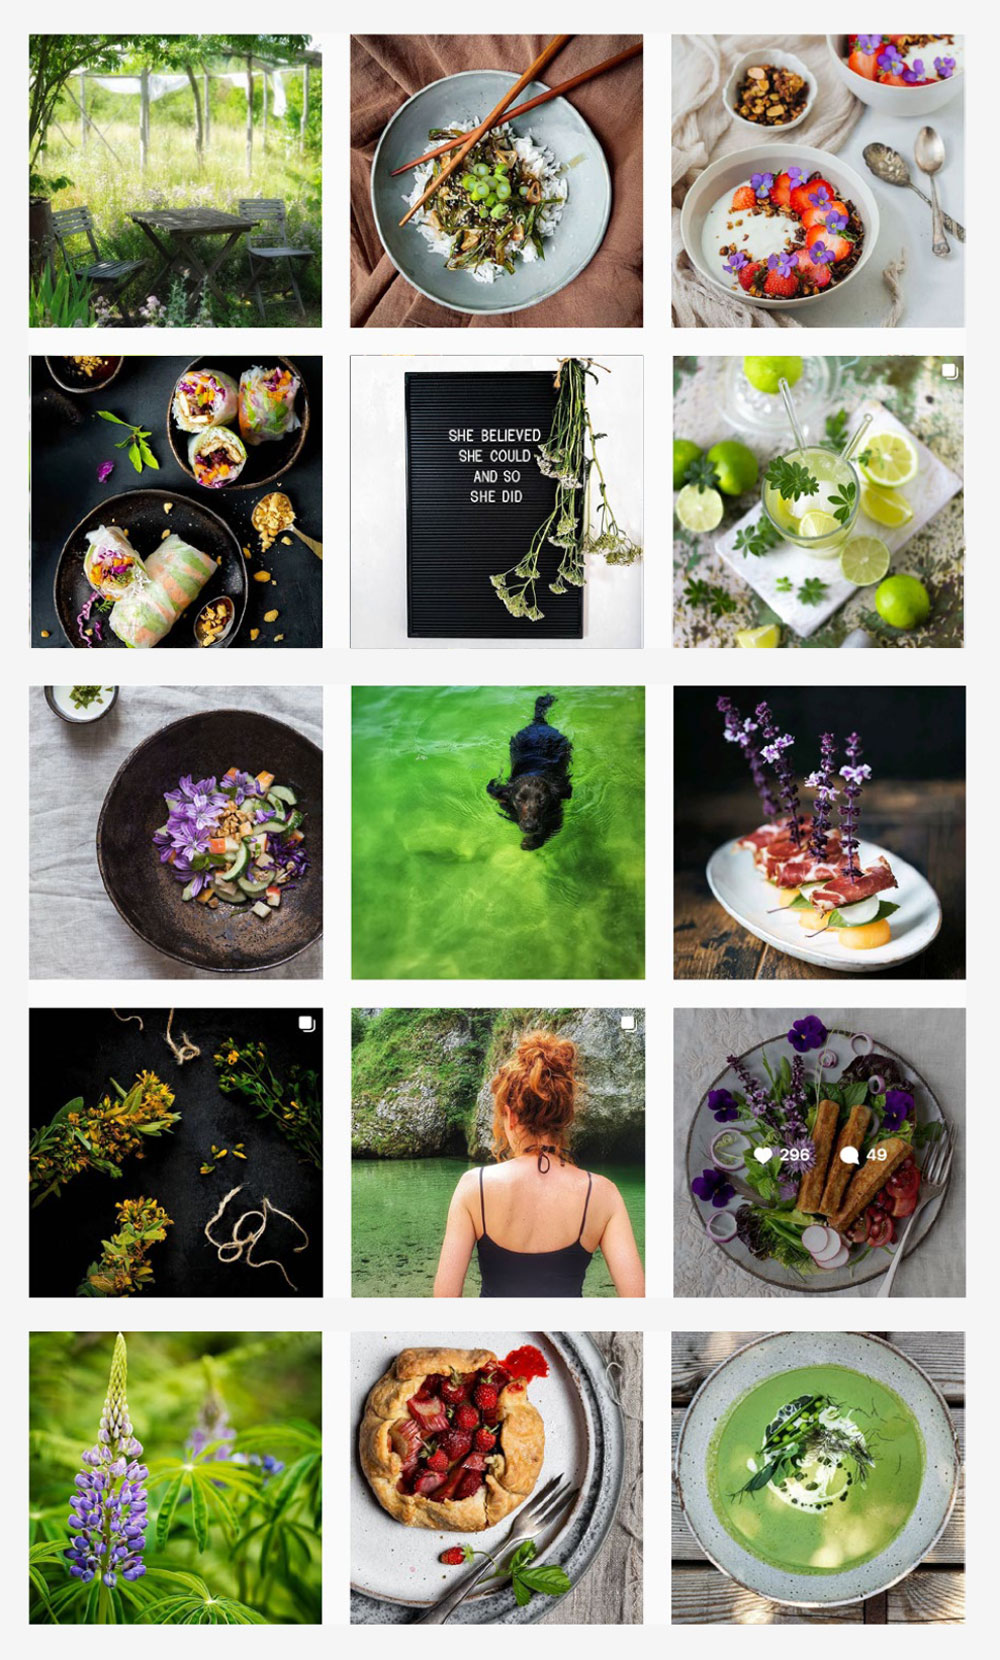 Bird and Spoon Instagram grid